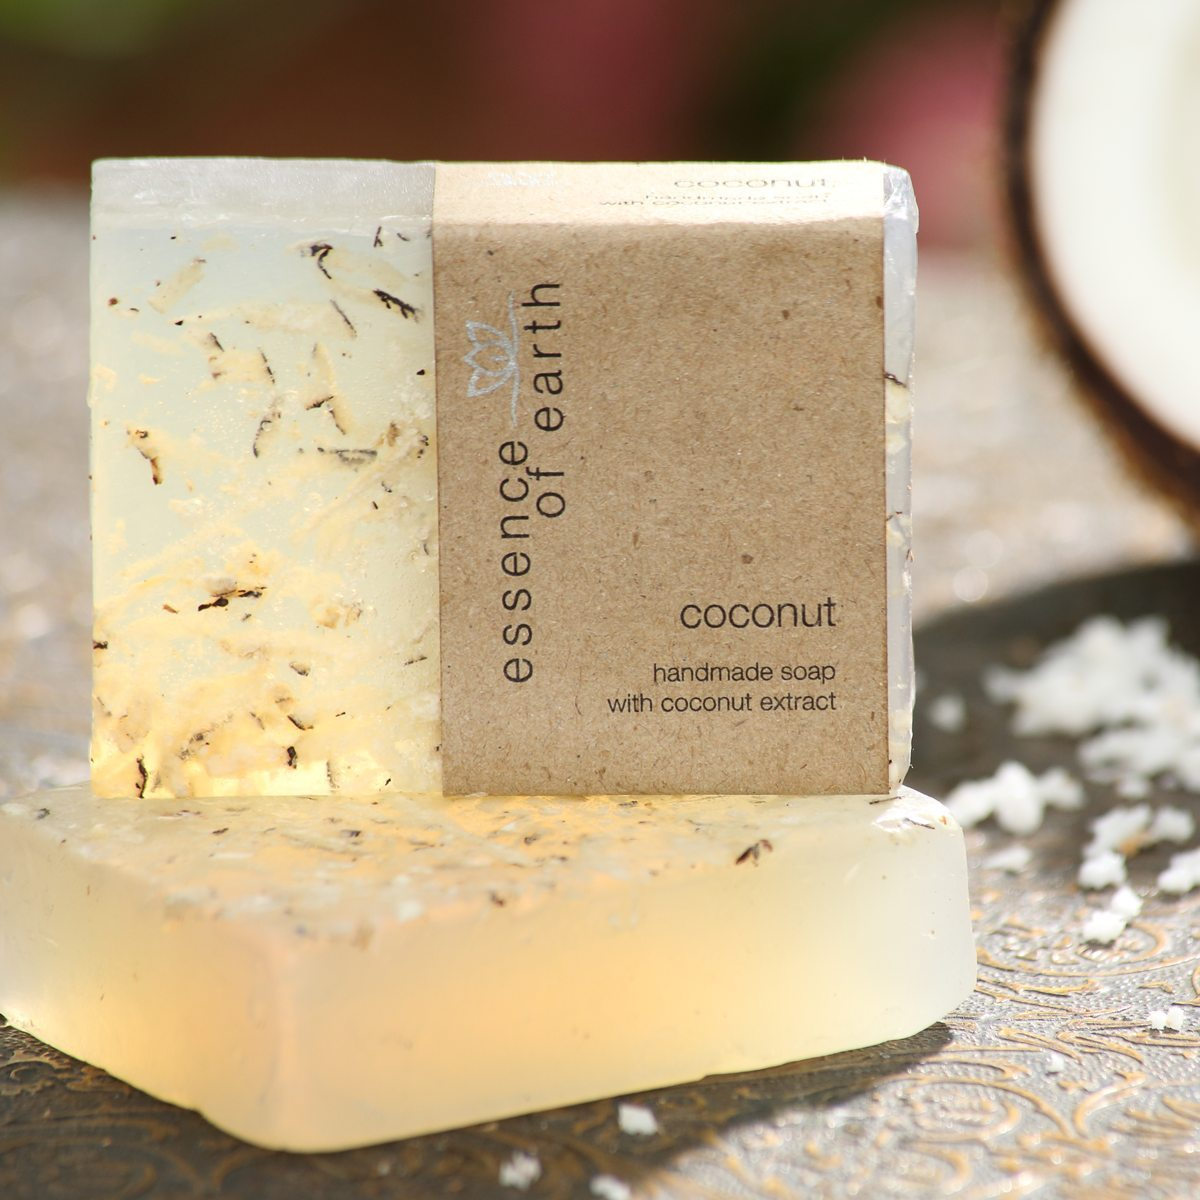 Coconut Handmade Soap (Coconut Extract)